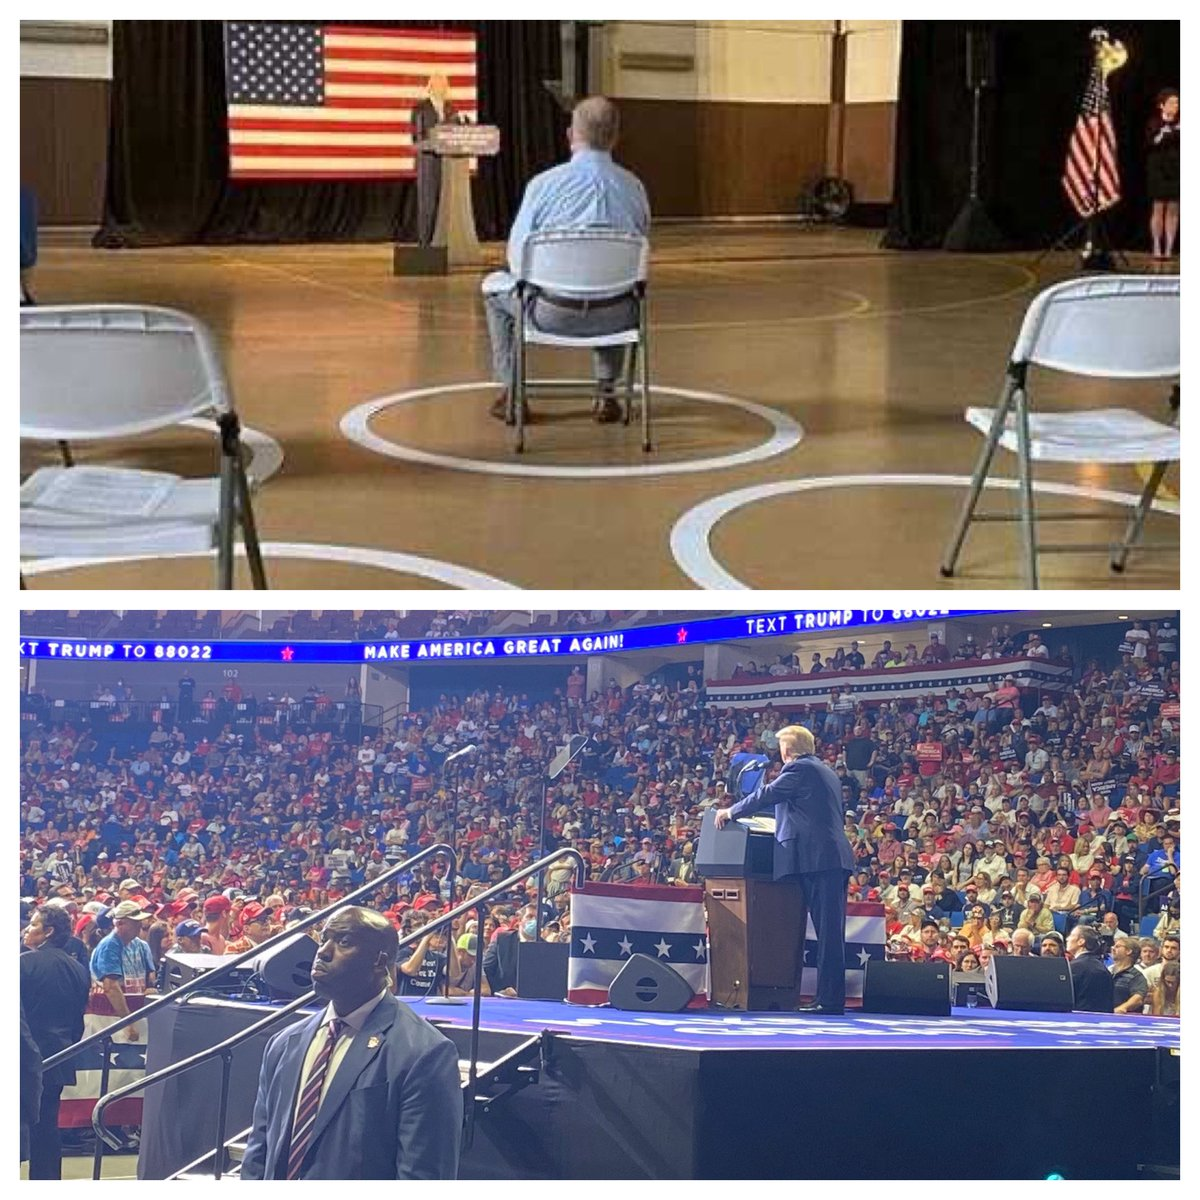 Some dishonest media will go out of the way to say arena wasn't full... weeks of fearmongoring, protestors on the ground... and our rally compared to Biden's is NOT EVEN CLOSE! Tens of thousands showed up to support FOUR MORE YEARS of @realDonaldTrump